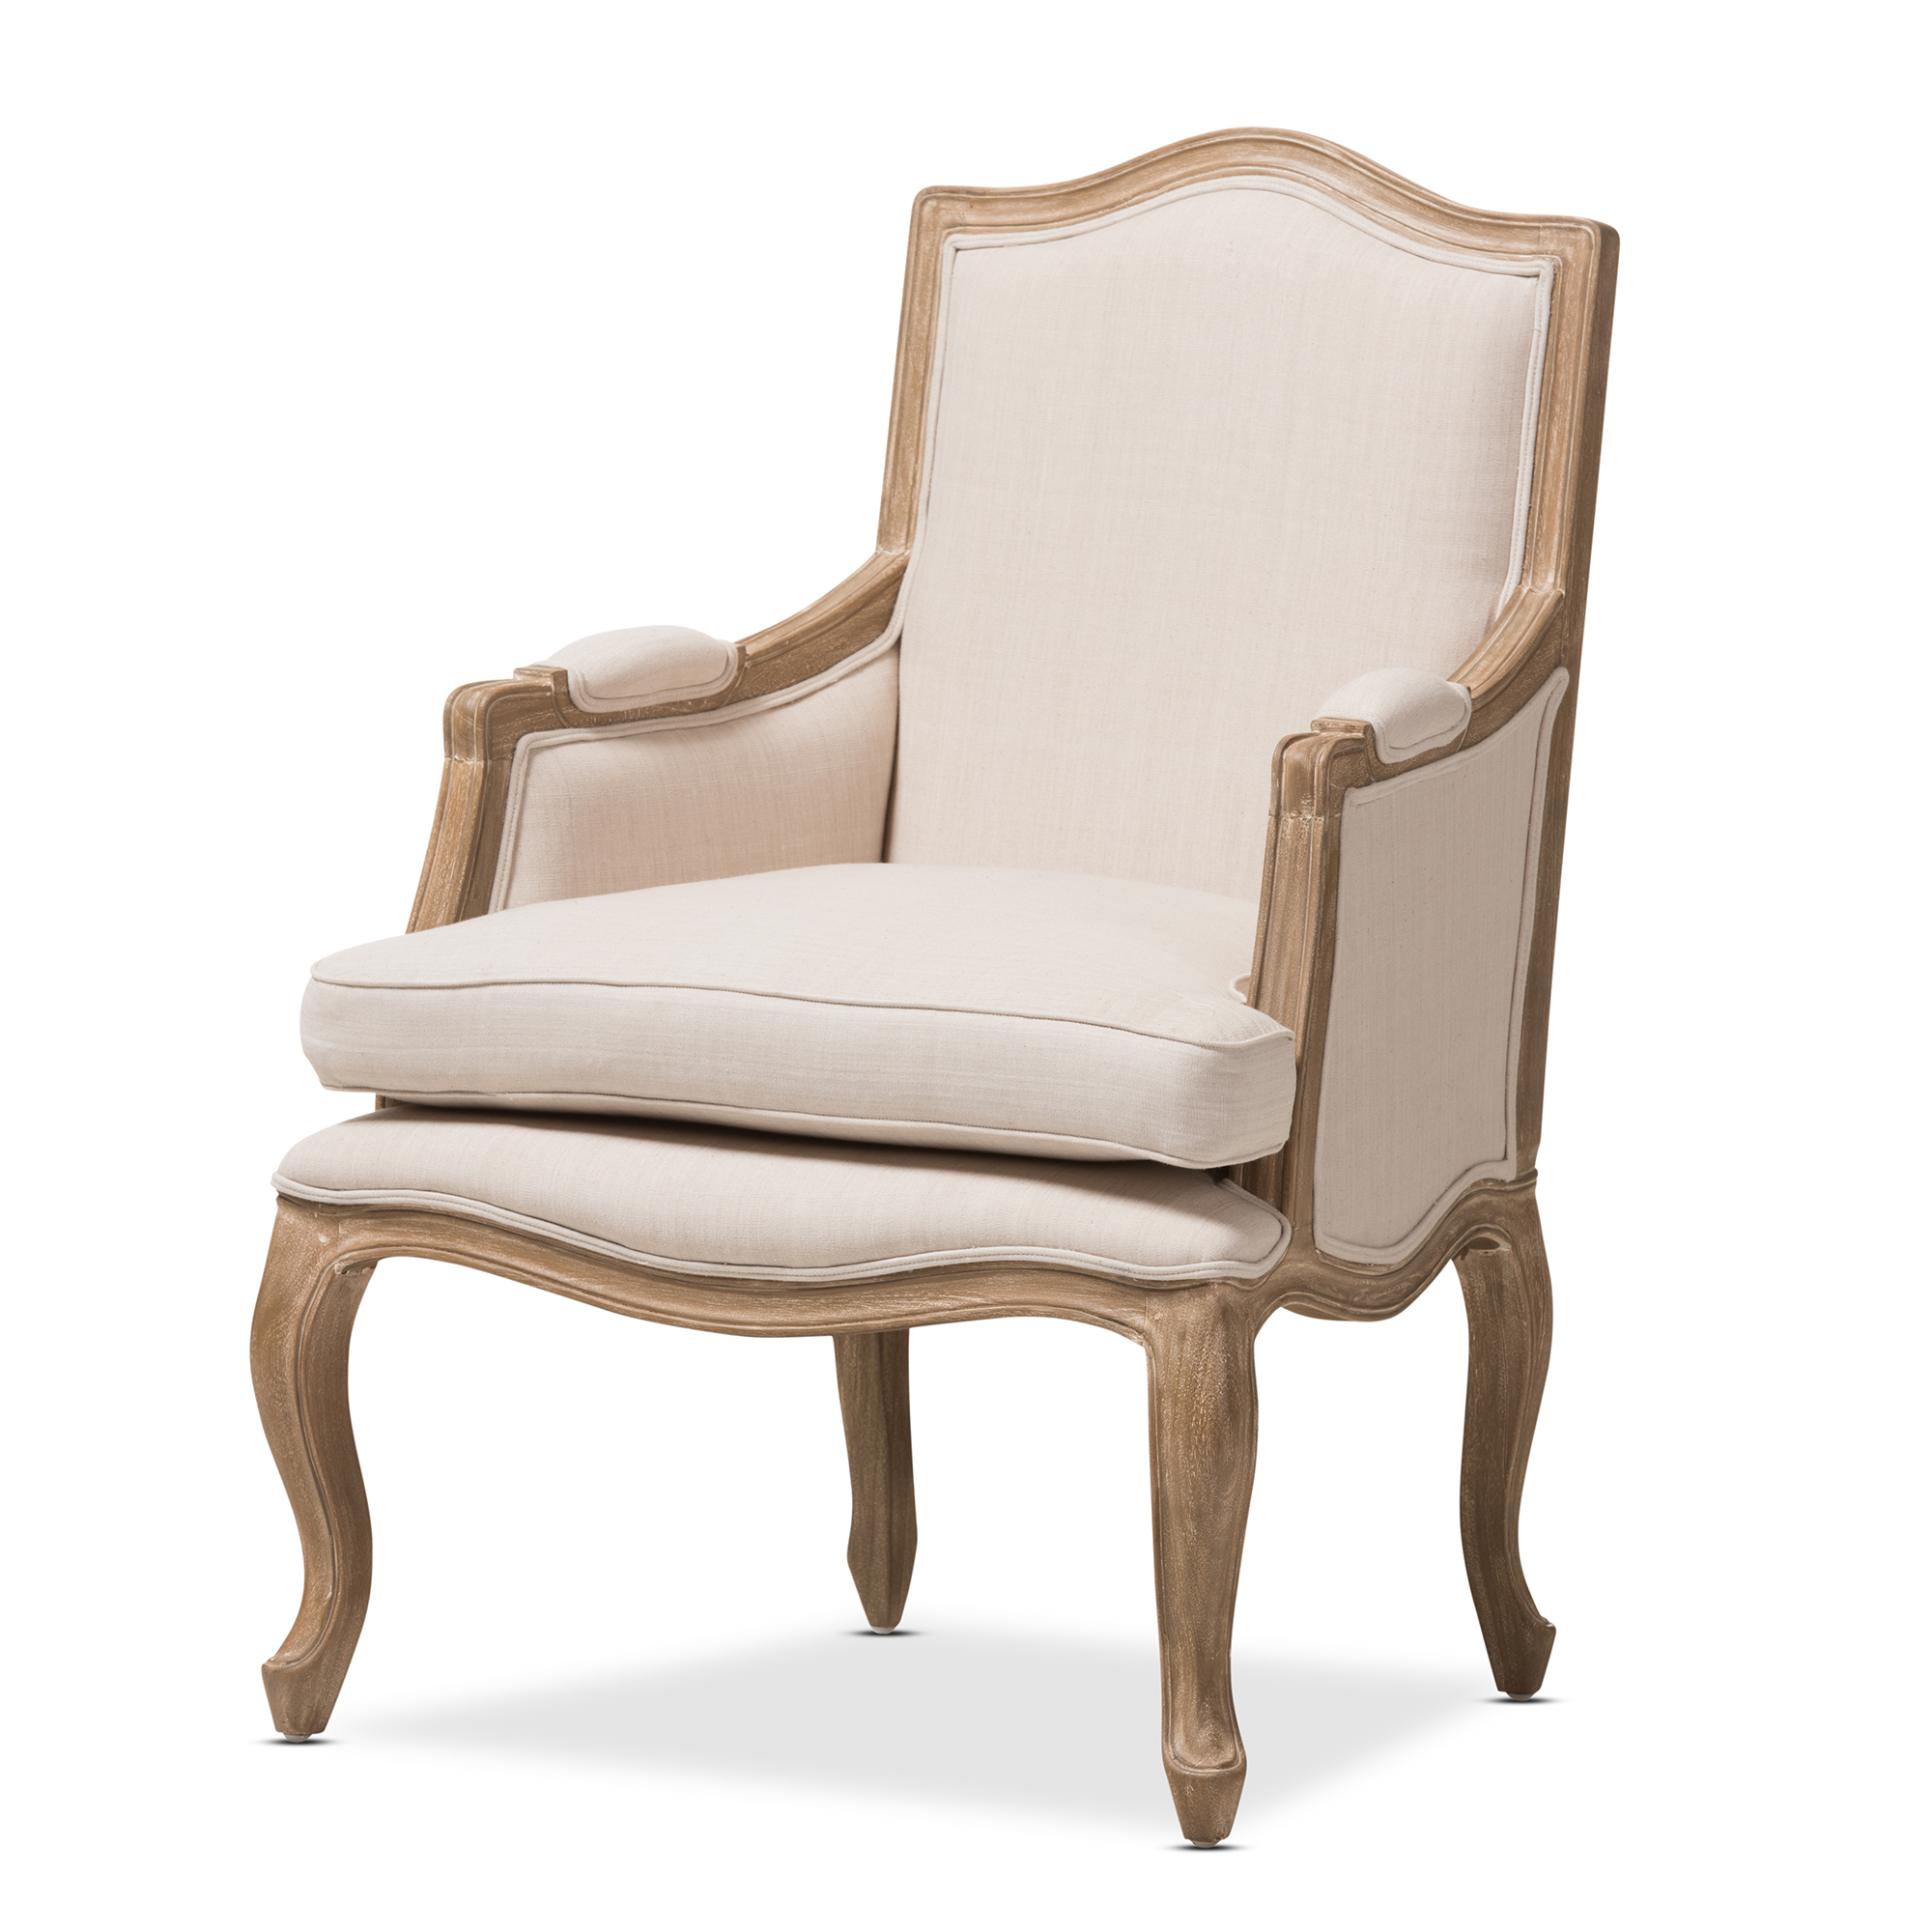 Studio Chairs Baxton Studio Nivernais Wood Traditional French Accent Chair